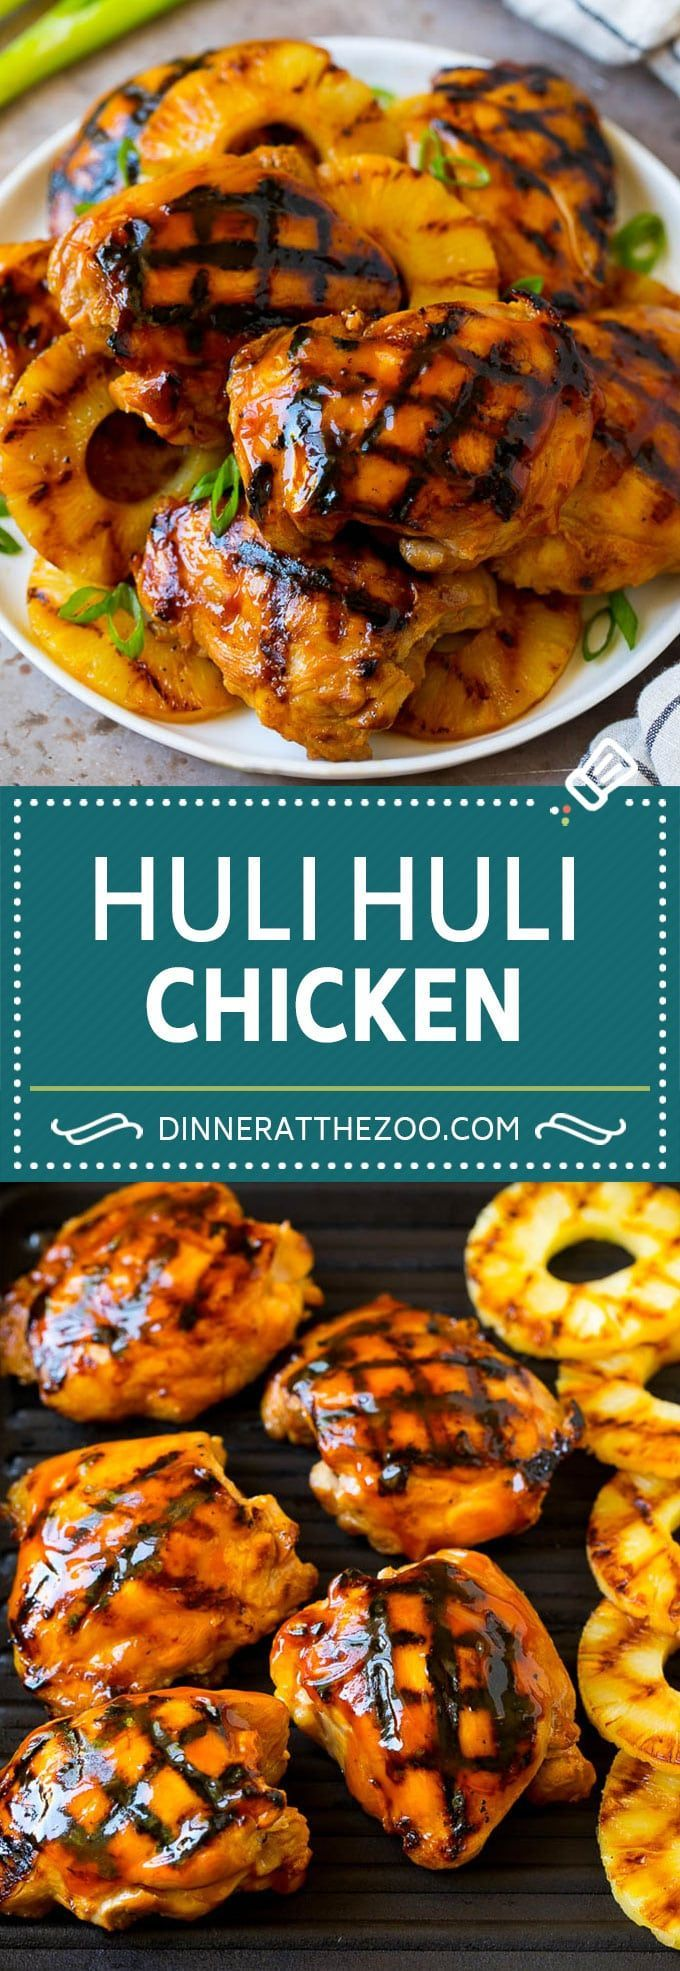 Huli Huli Chicken - Dinner at the Zoo